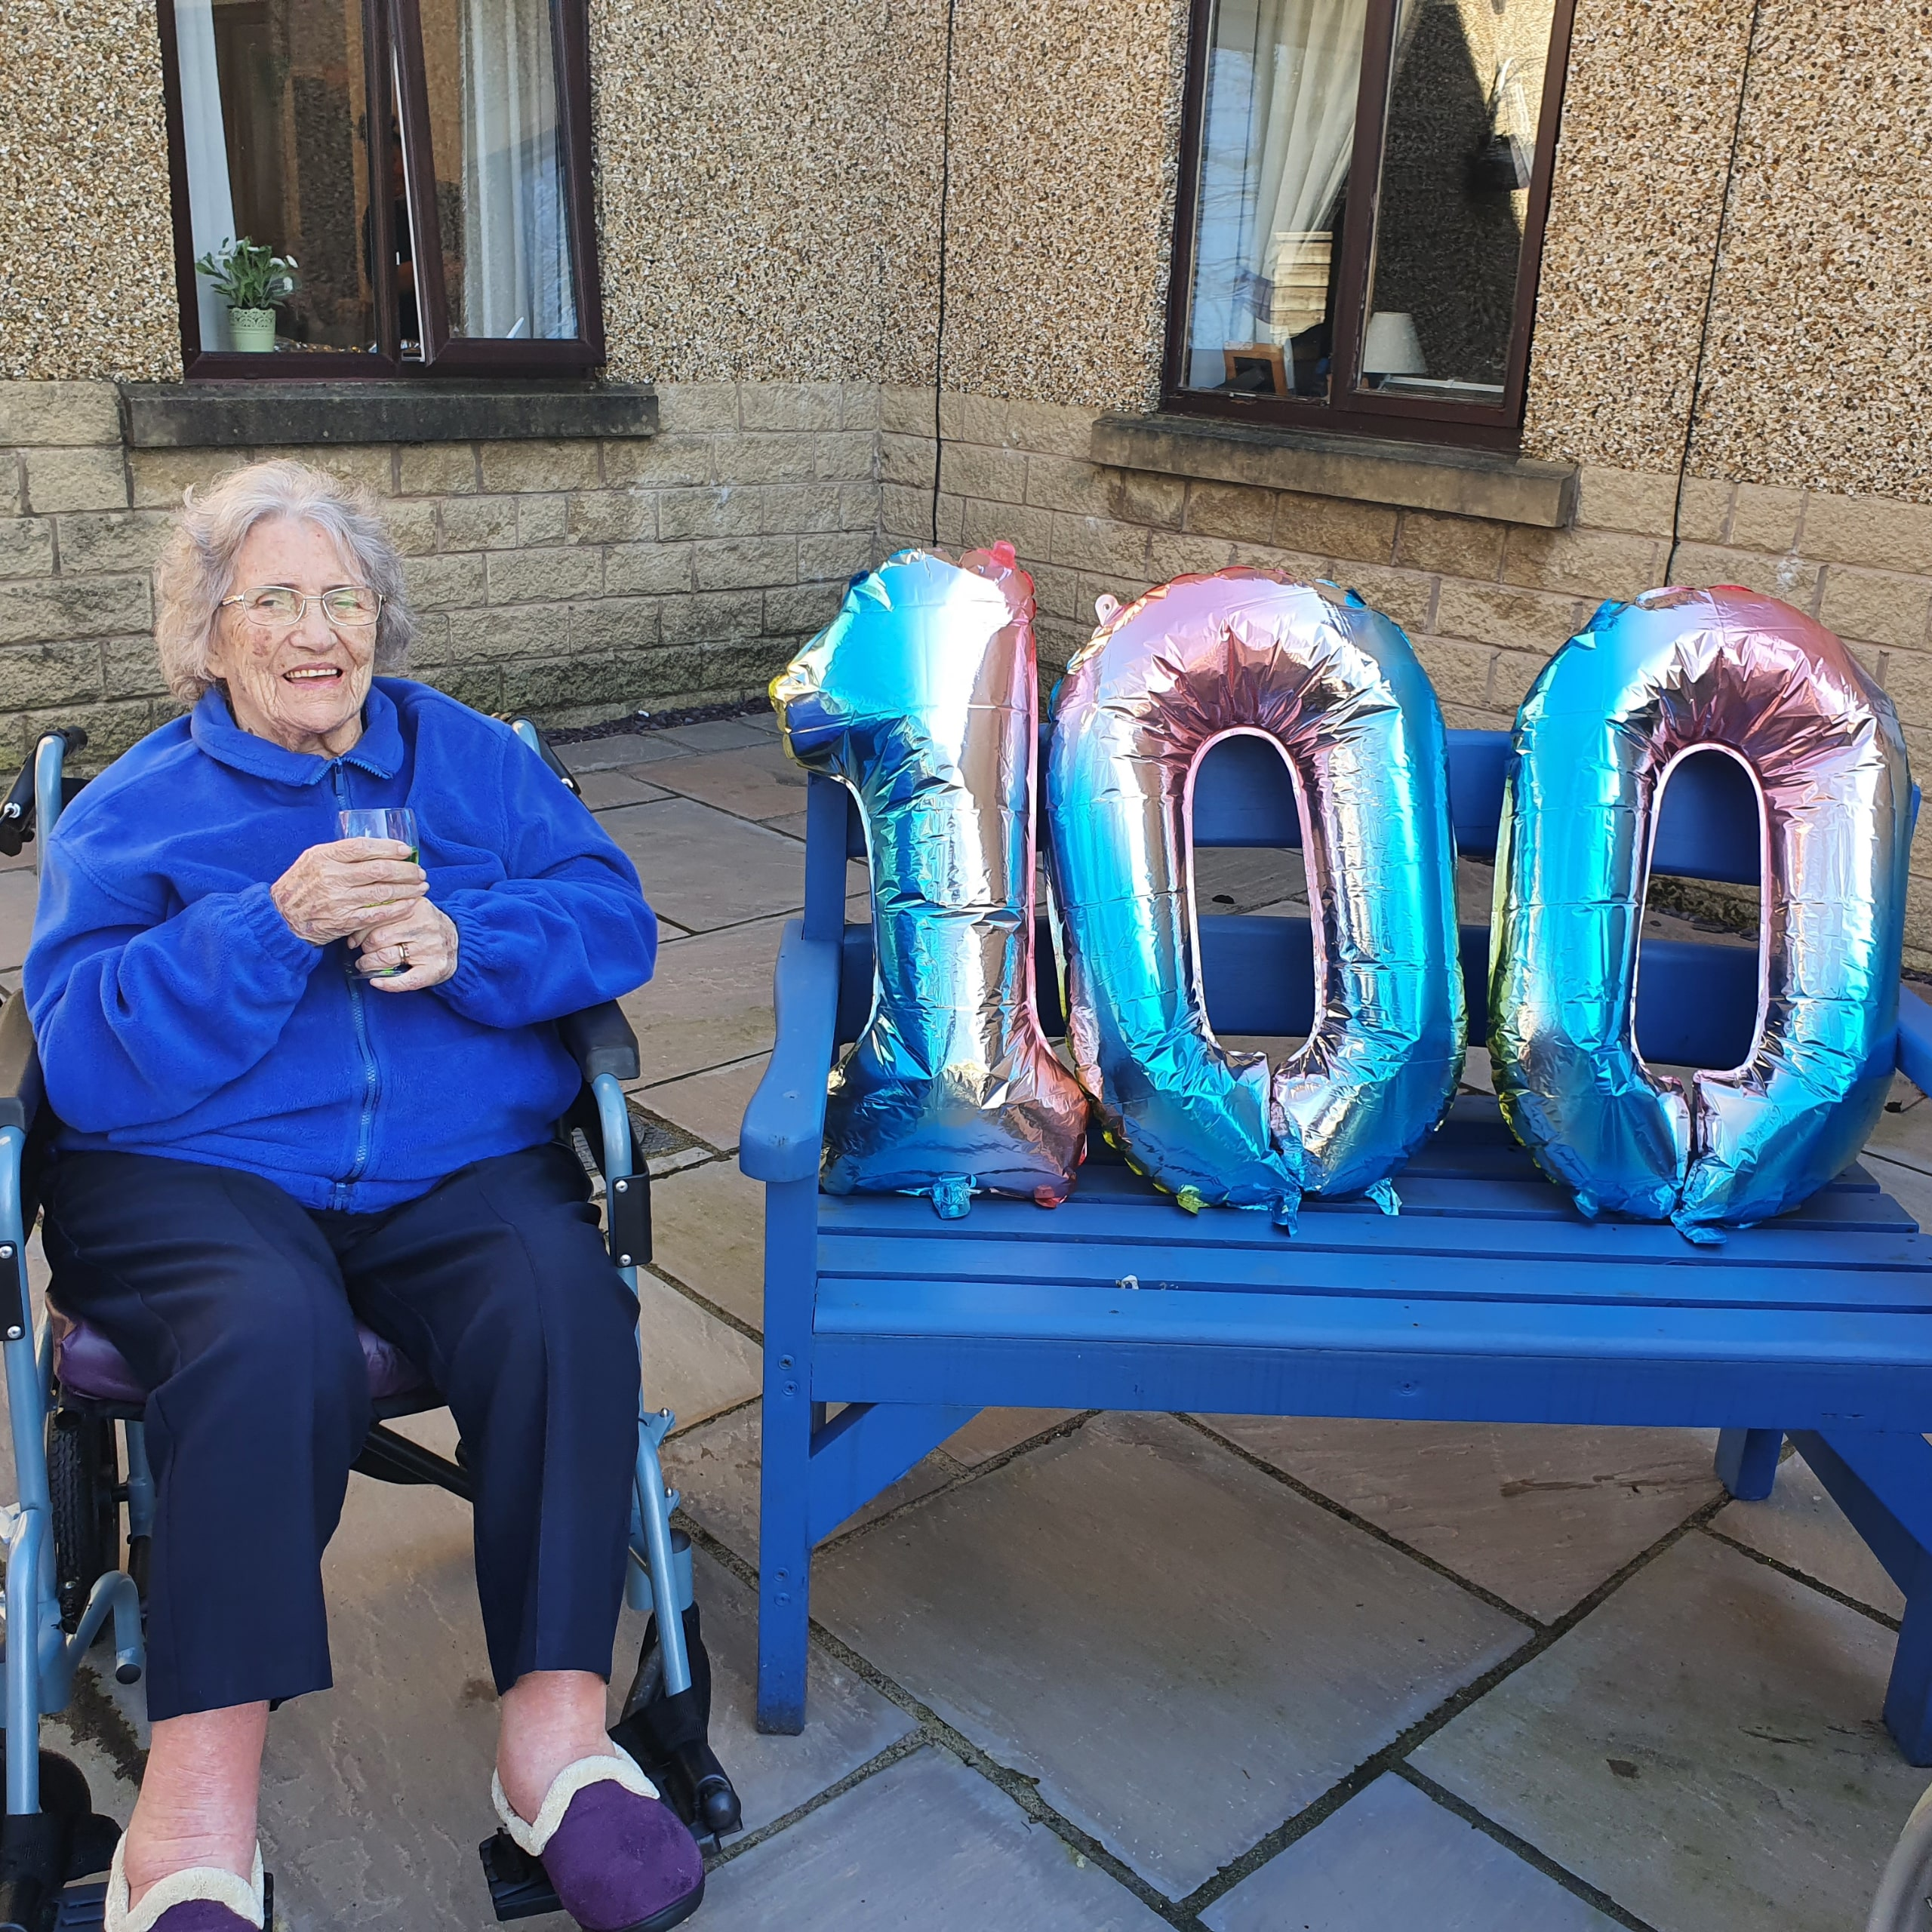 Accrington care home resident Evelyn Corris celebrating her 100th birthday at Hope House.